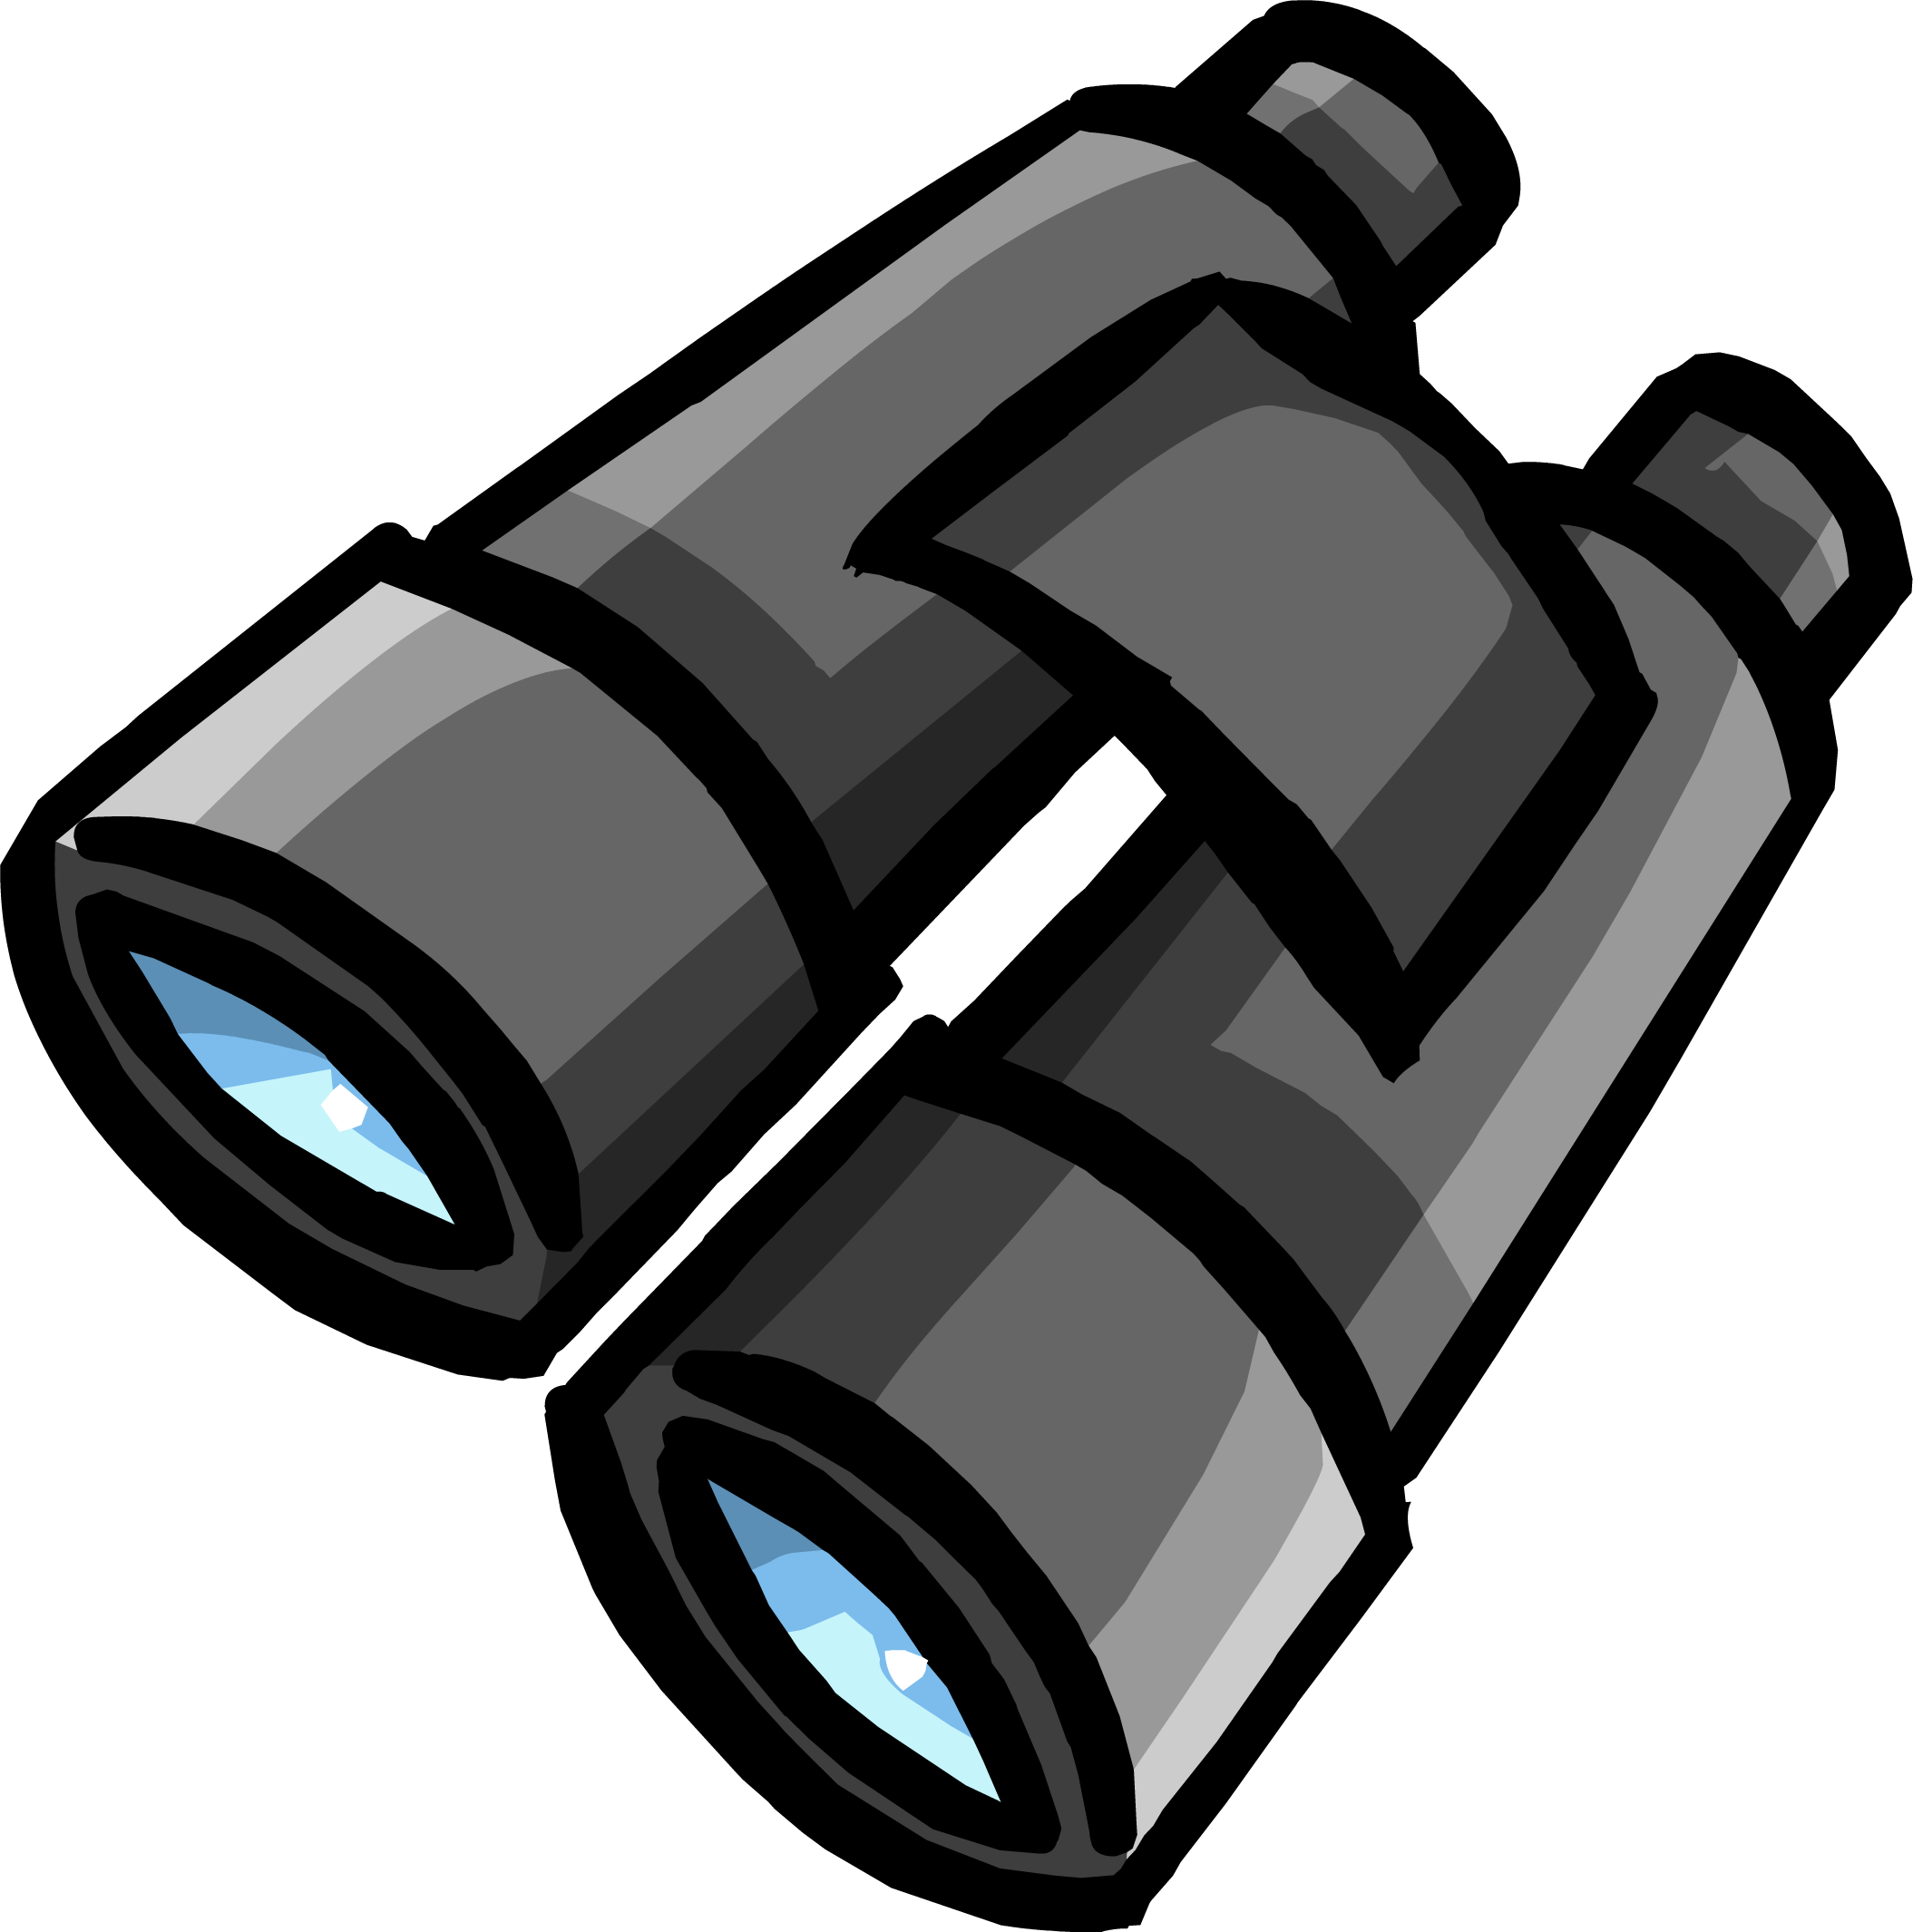 foxhole wiki how to use binoculars